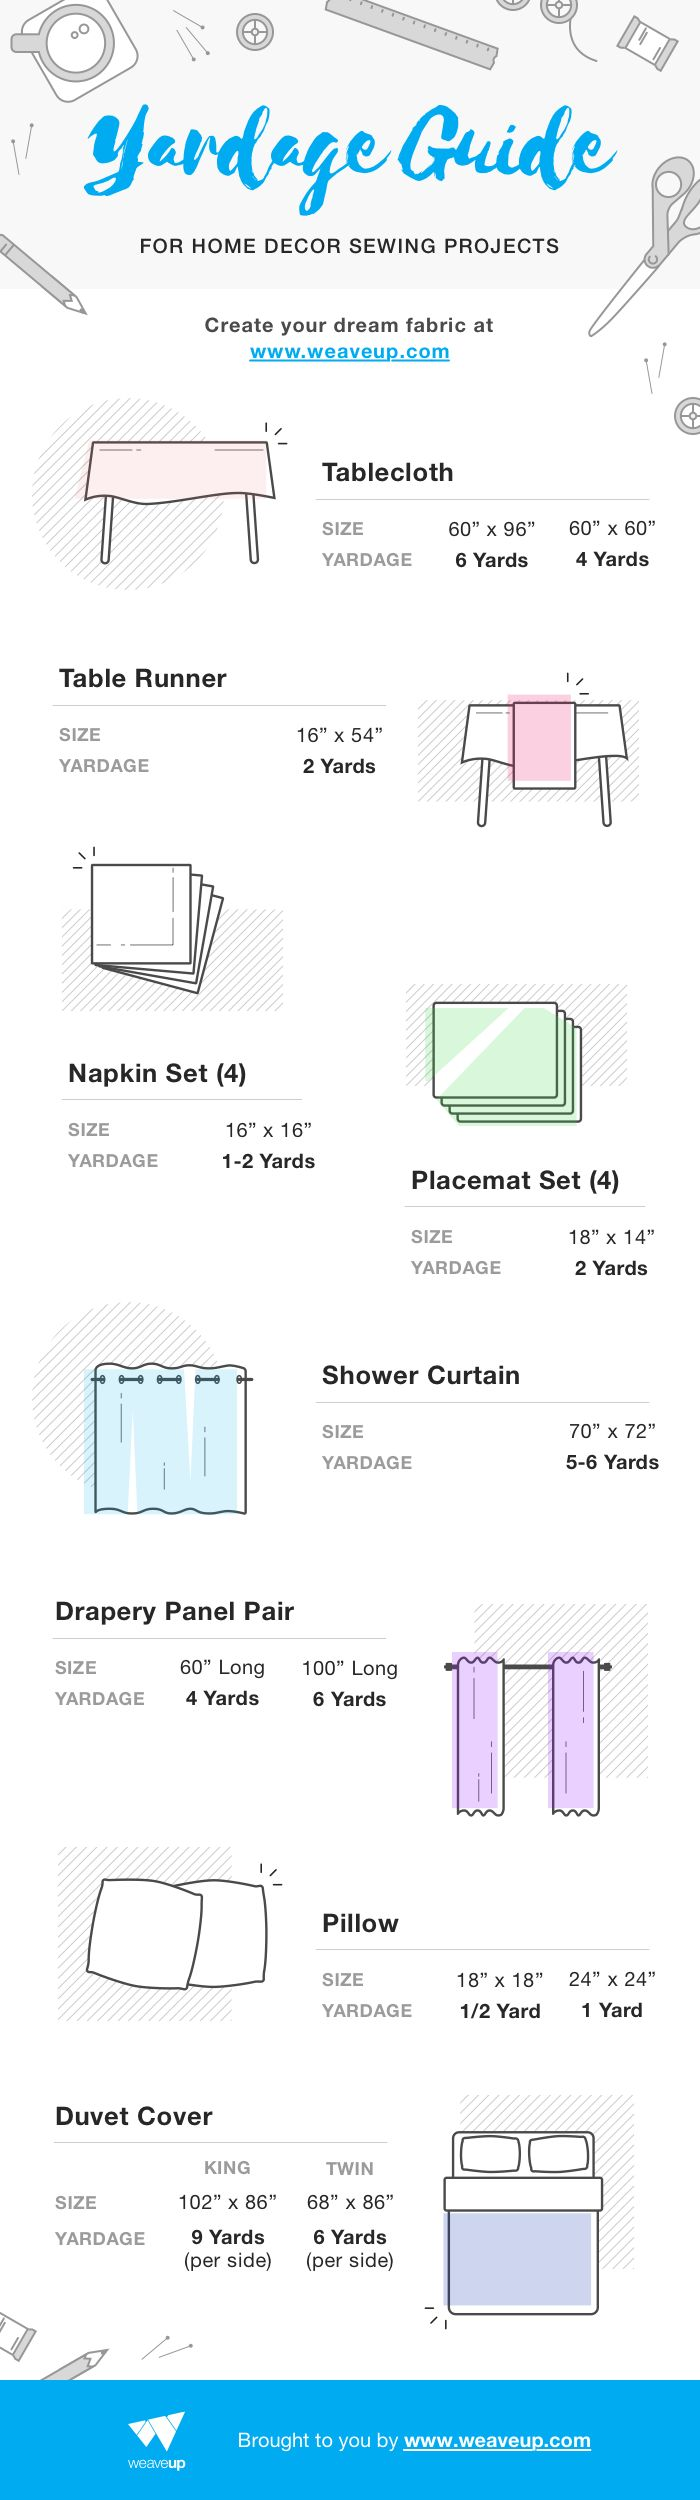 Based on standard product dimensions, we whipped up thishelpful yardage guide to get you started. Each yardage calculation accounts for 2-4 inches of seam allowance and 2-4 inches of hem allowance(except for napkins, but we'll get